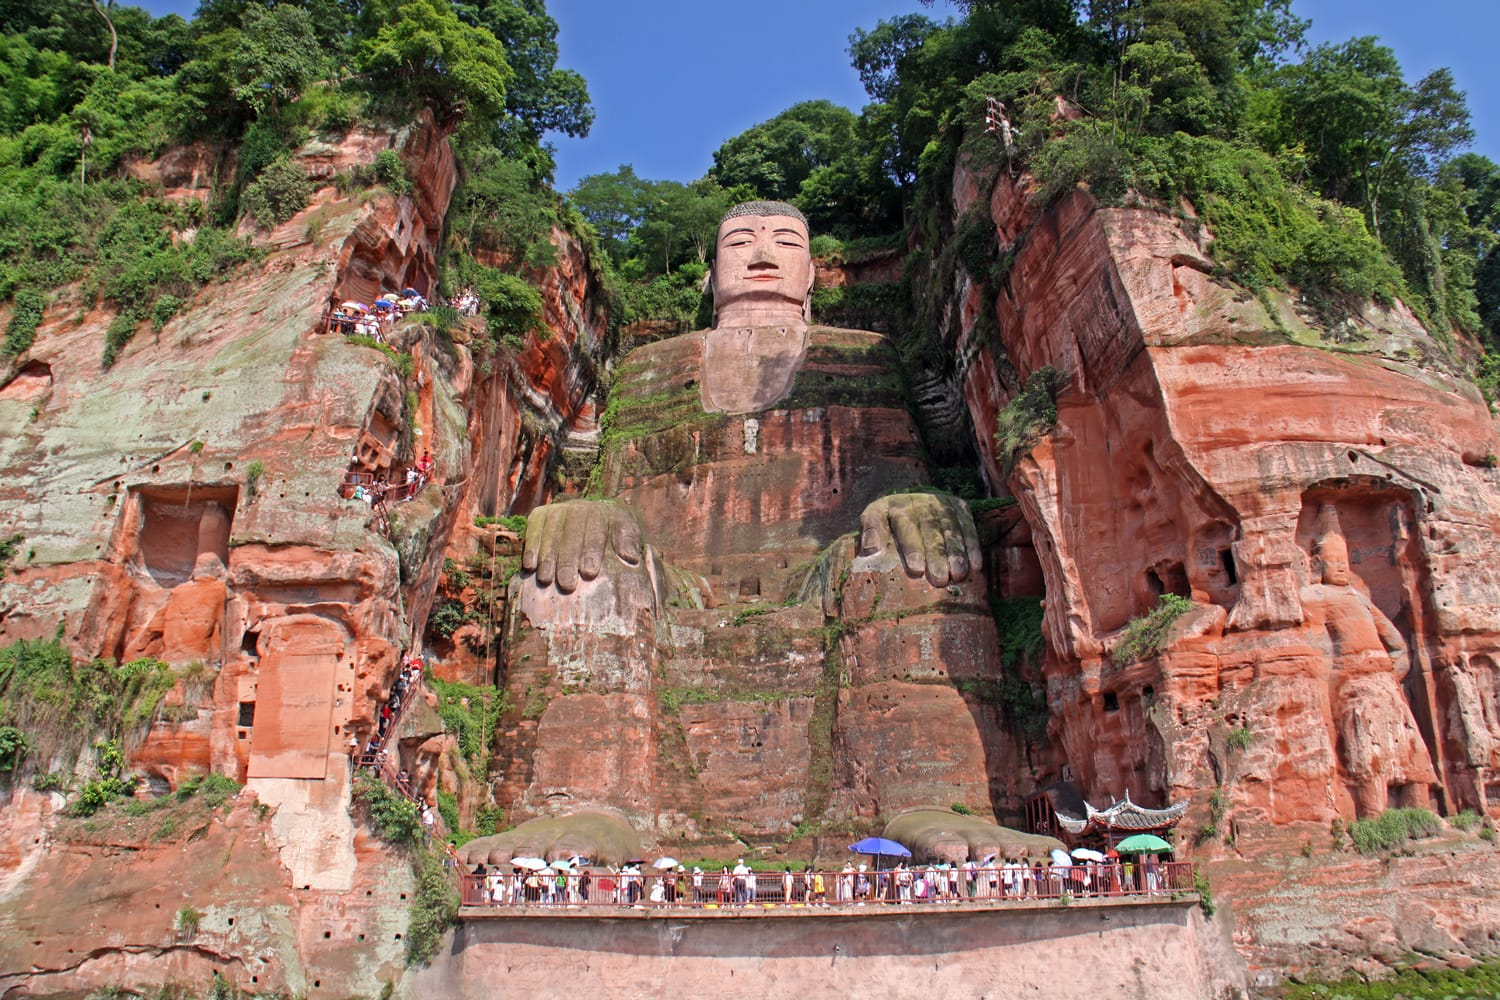 One of the world's largest budga statue in Leshan, Sichuan, China (it is carved out of mountain and 71 meter tall)